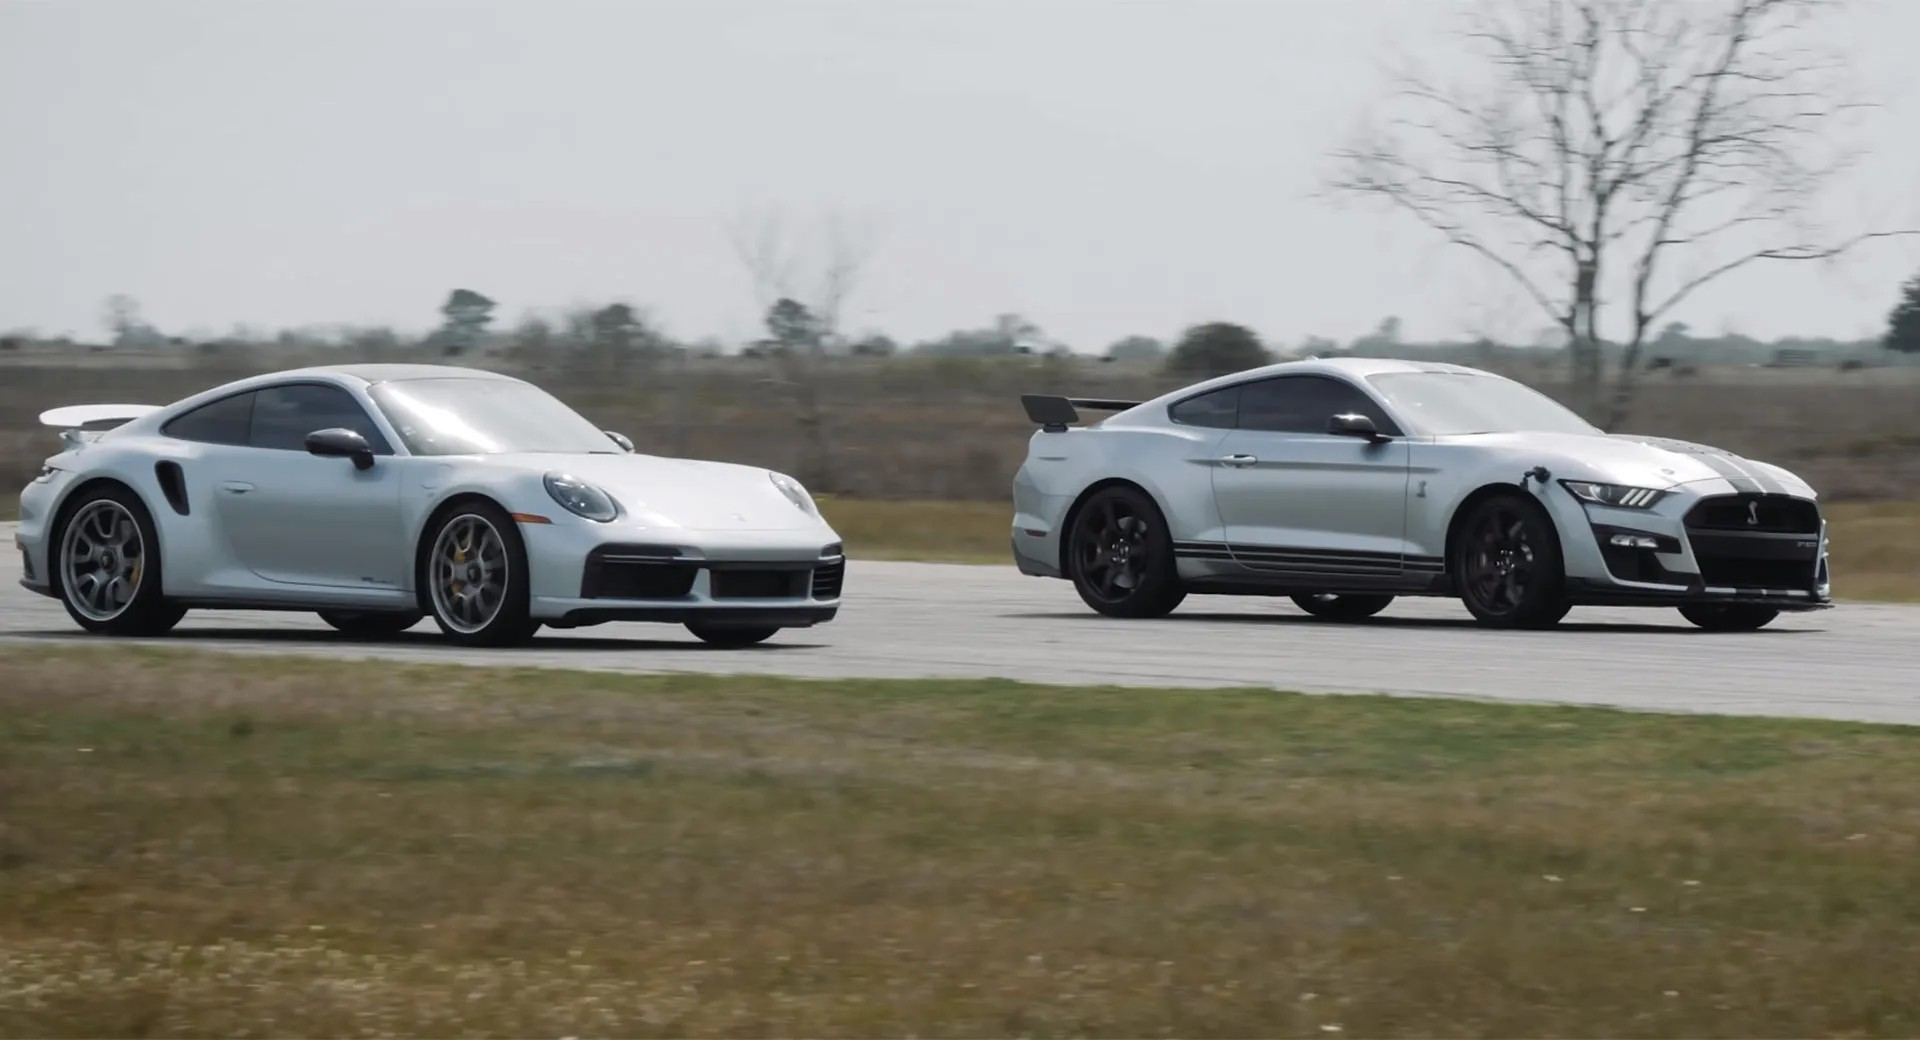 In its ultimate Shelby GT500 guise, the Ford Mustang has crazy acceleration dynamics, but still lags behind the legendary Porsche 911 Turbo S on a drag strip. Hennessey Performance set out to find out how much extra muscle it may need to match the German supercar.